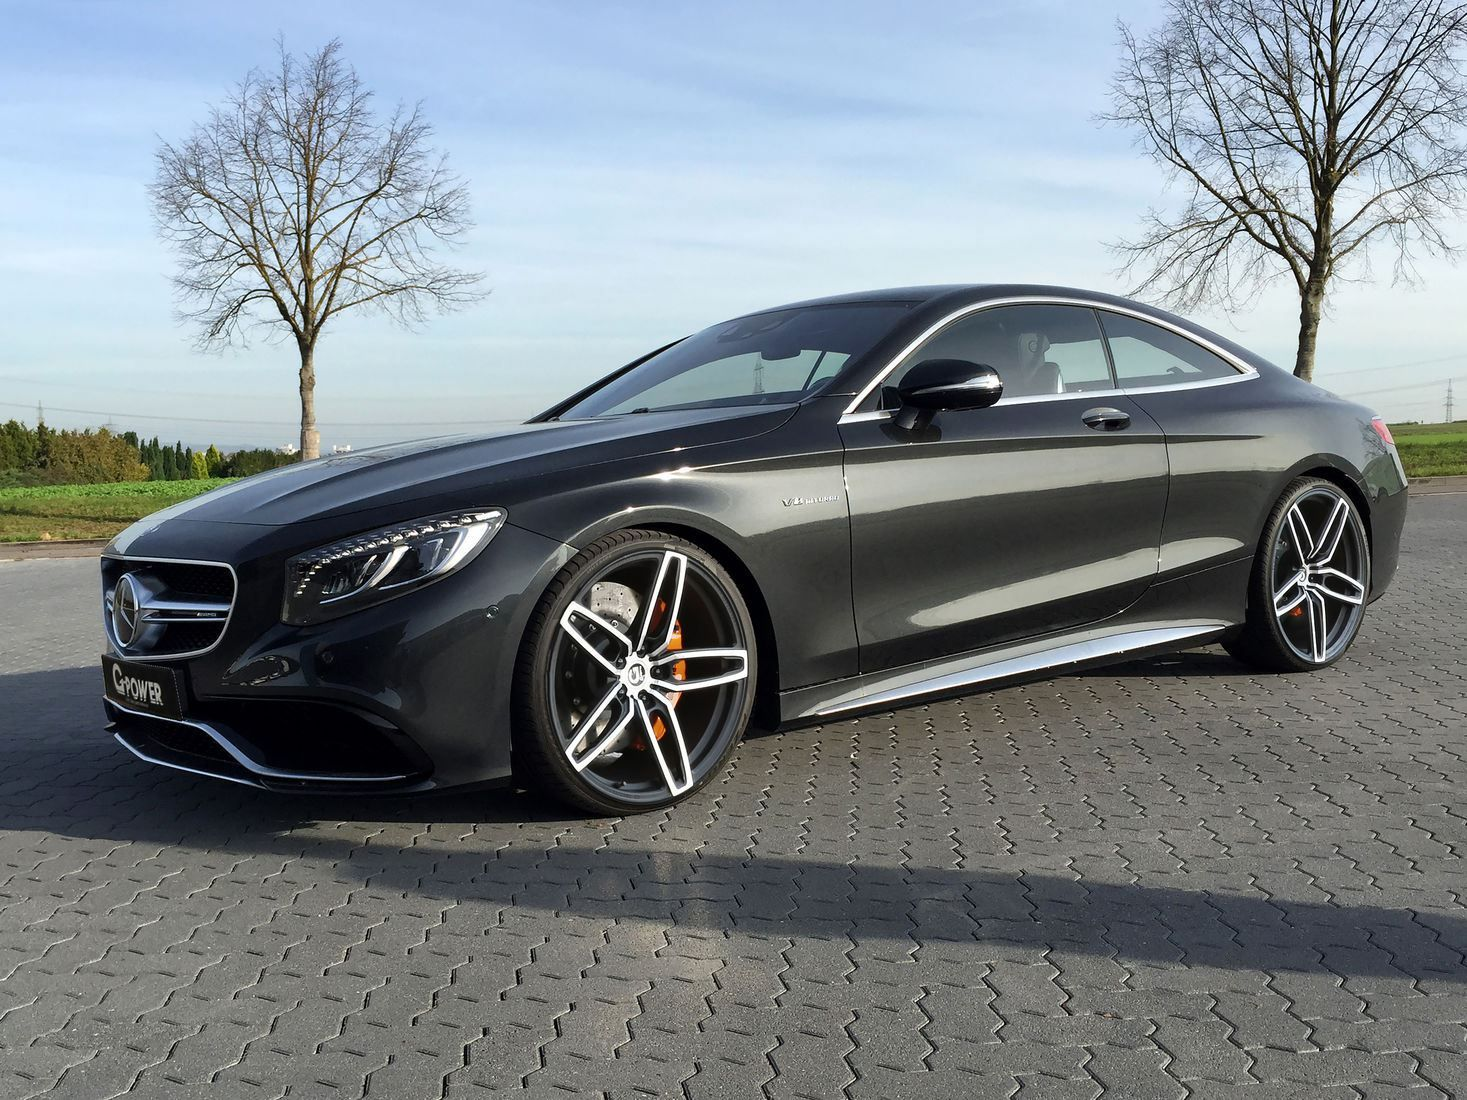 Mercedes Benz S63 Amg Coupe By G Power Car Substance Mercedes Benz Cl Mercedes Benz Cars Black Mercedes Benz